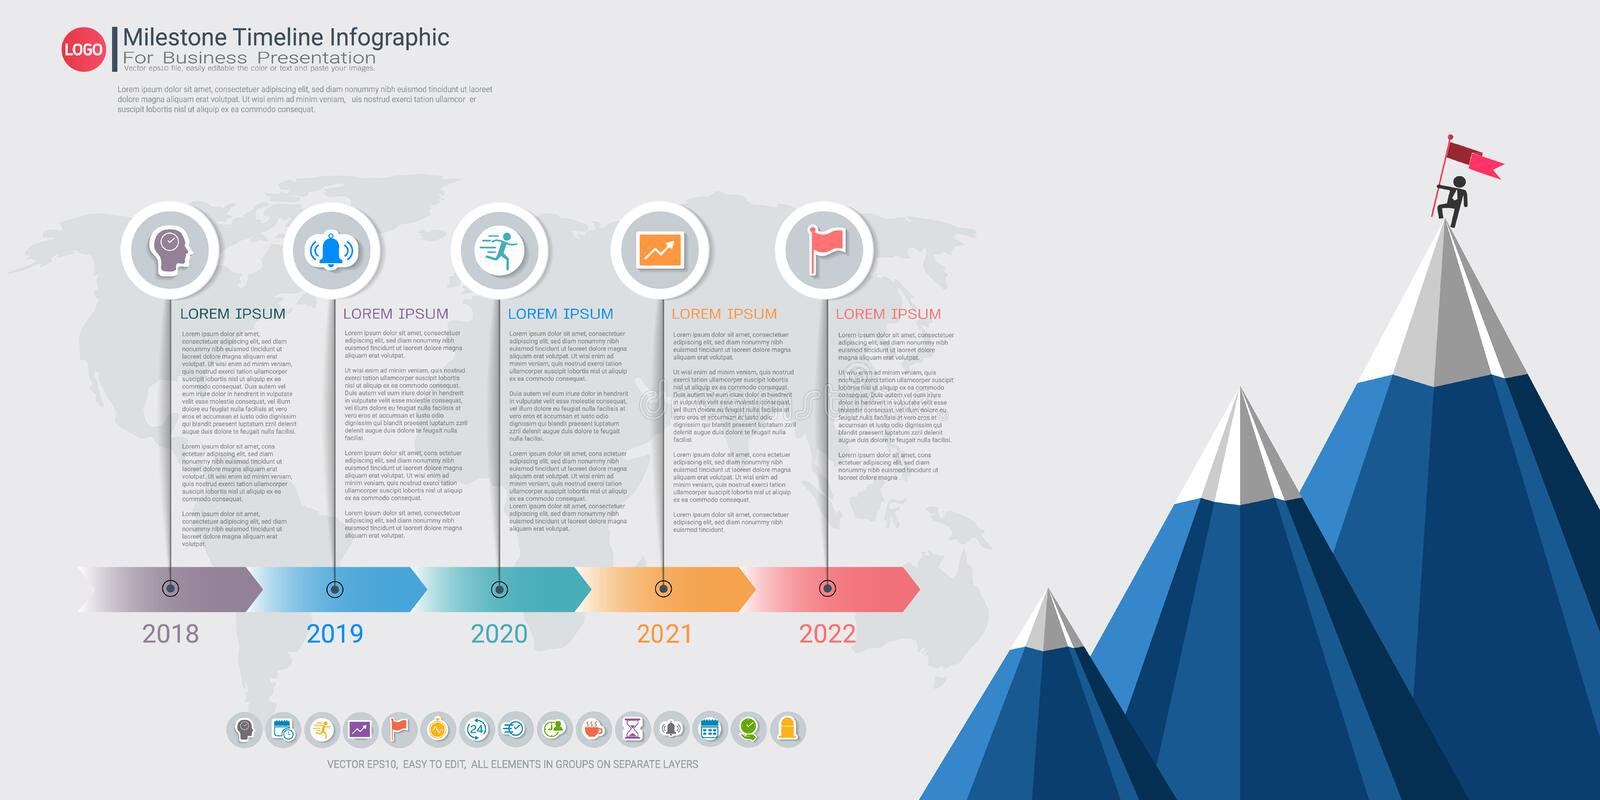 Milestone timeline infographic design. Milestone timeline infographic design, Road map or strategic plan to define company values, Can be used milestones for stock illustration